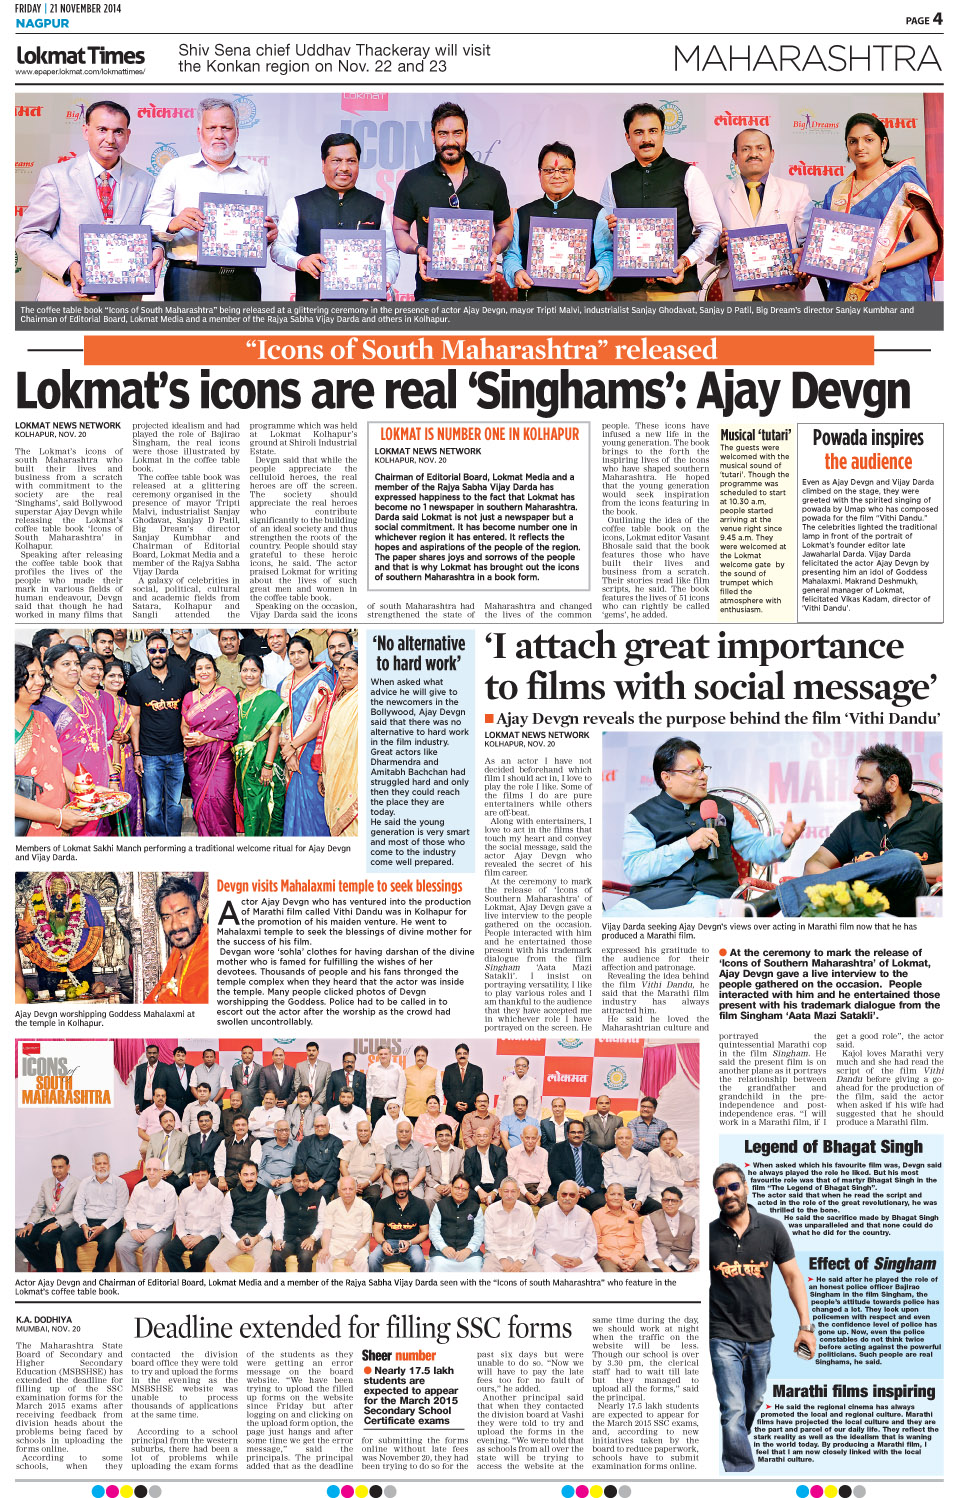 Lokmat's icons are real 'Singhams': Ajay Devgn